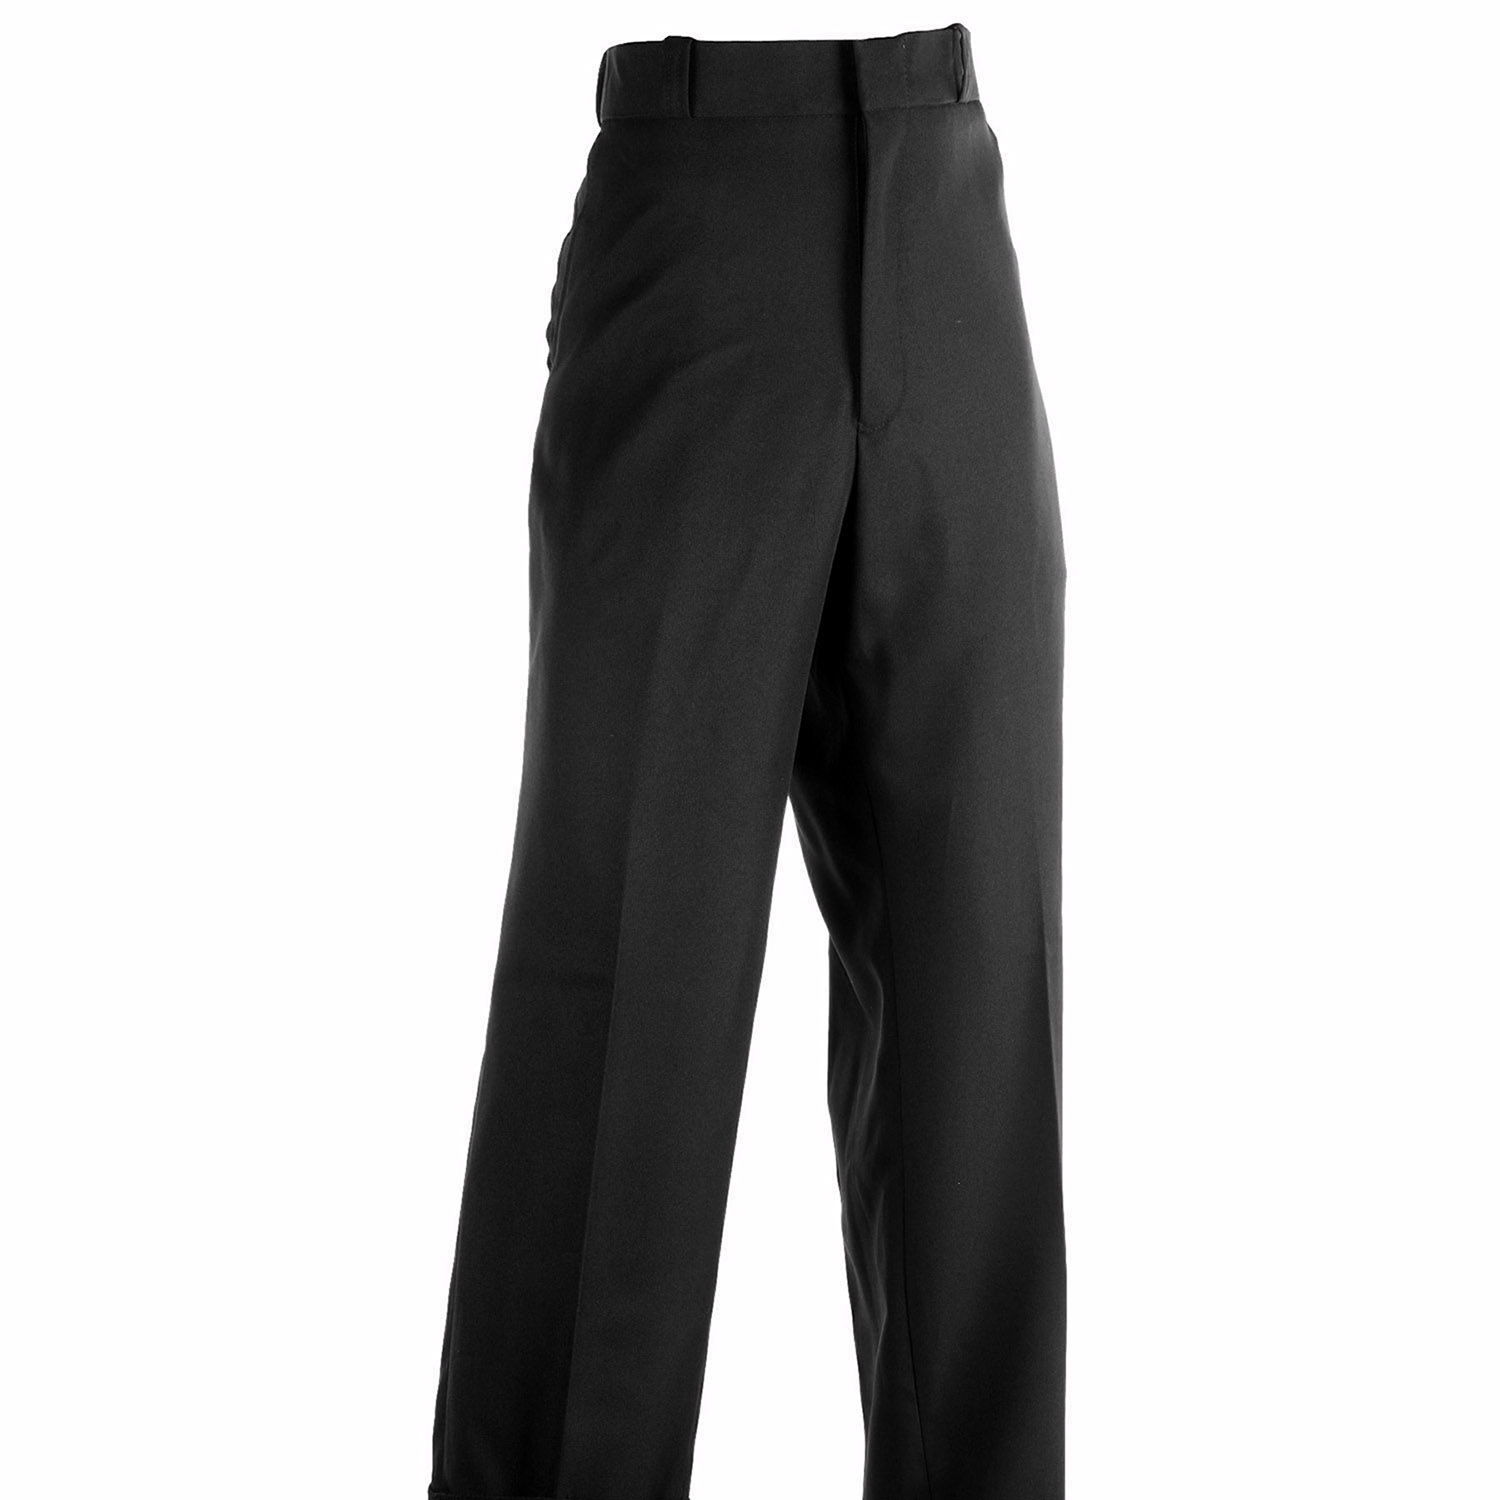 100% Polyester Uniform Trousers.